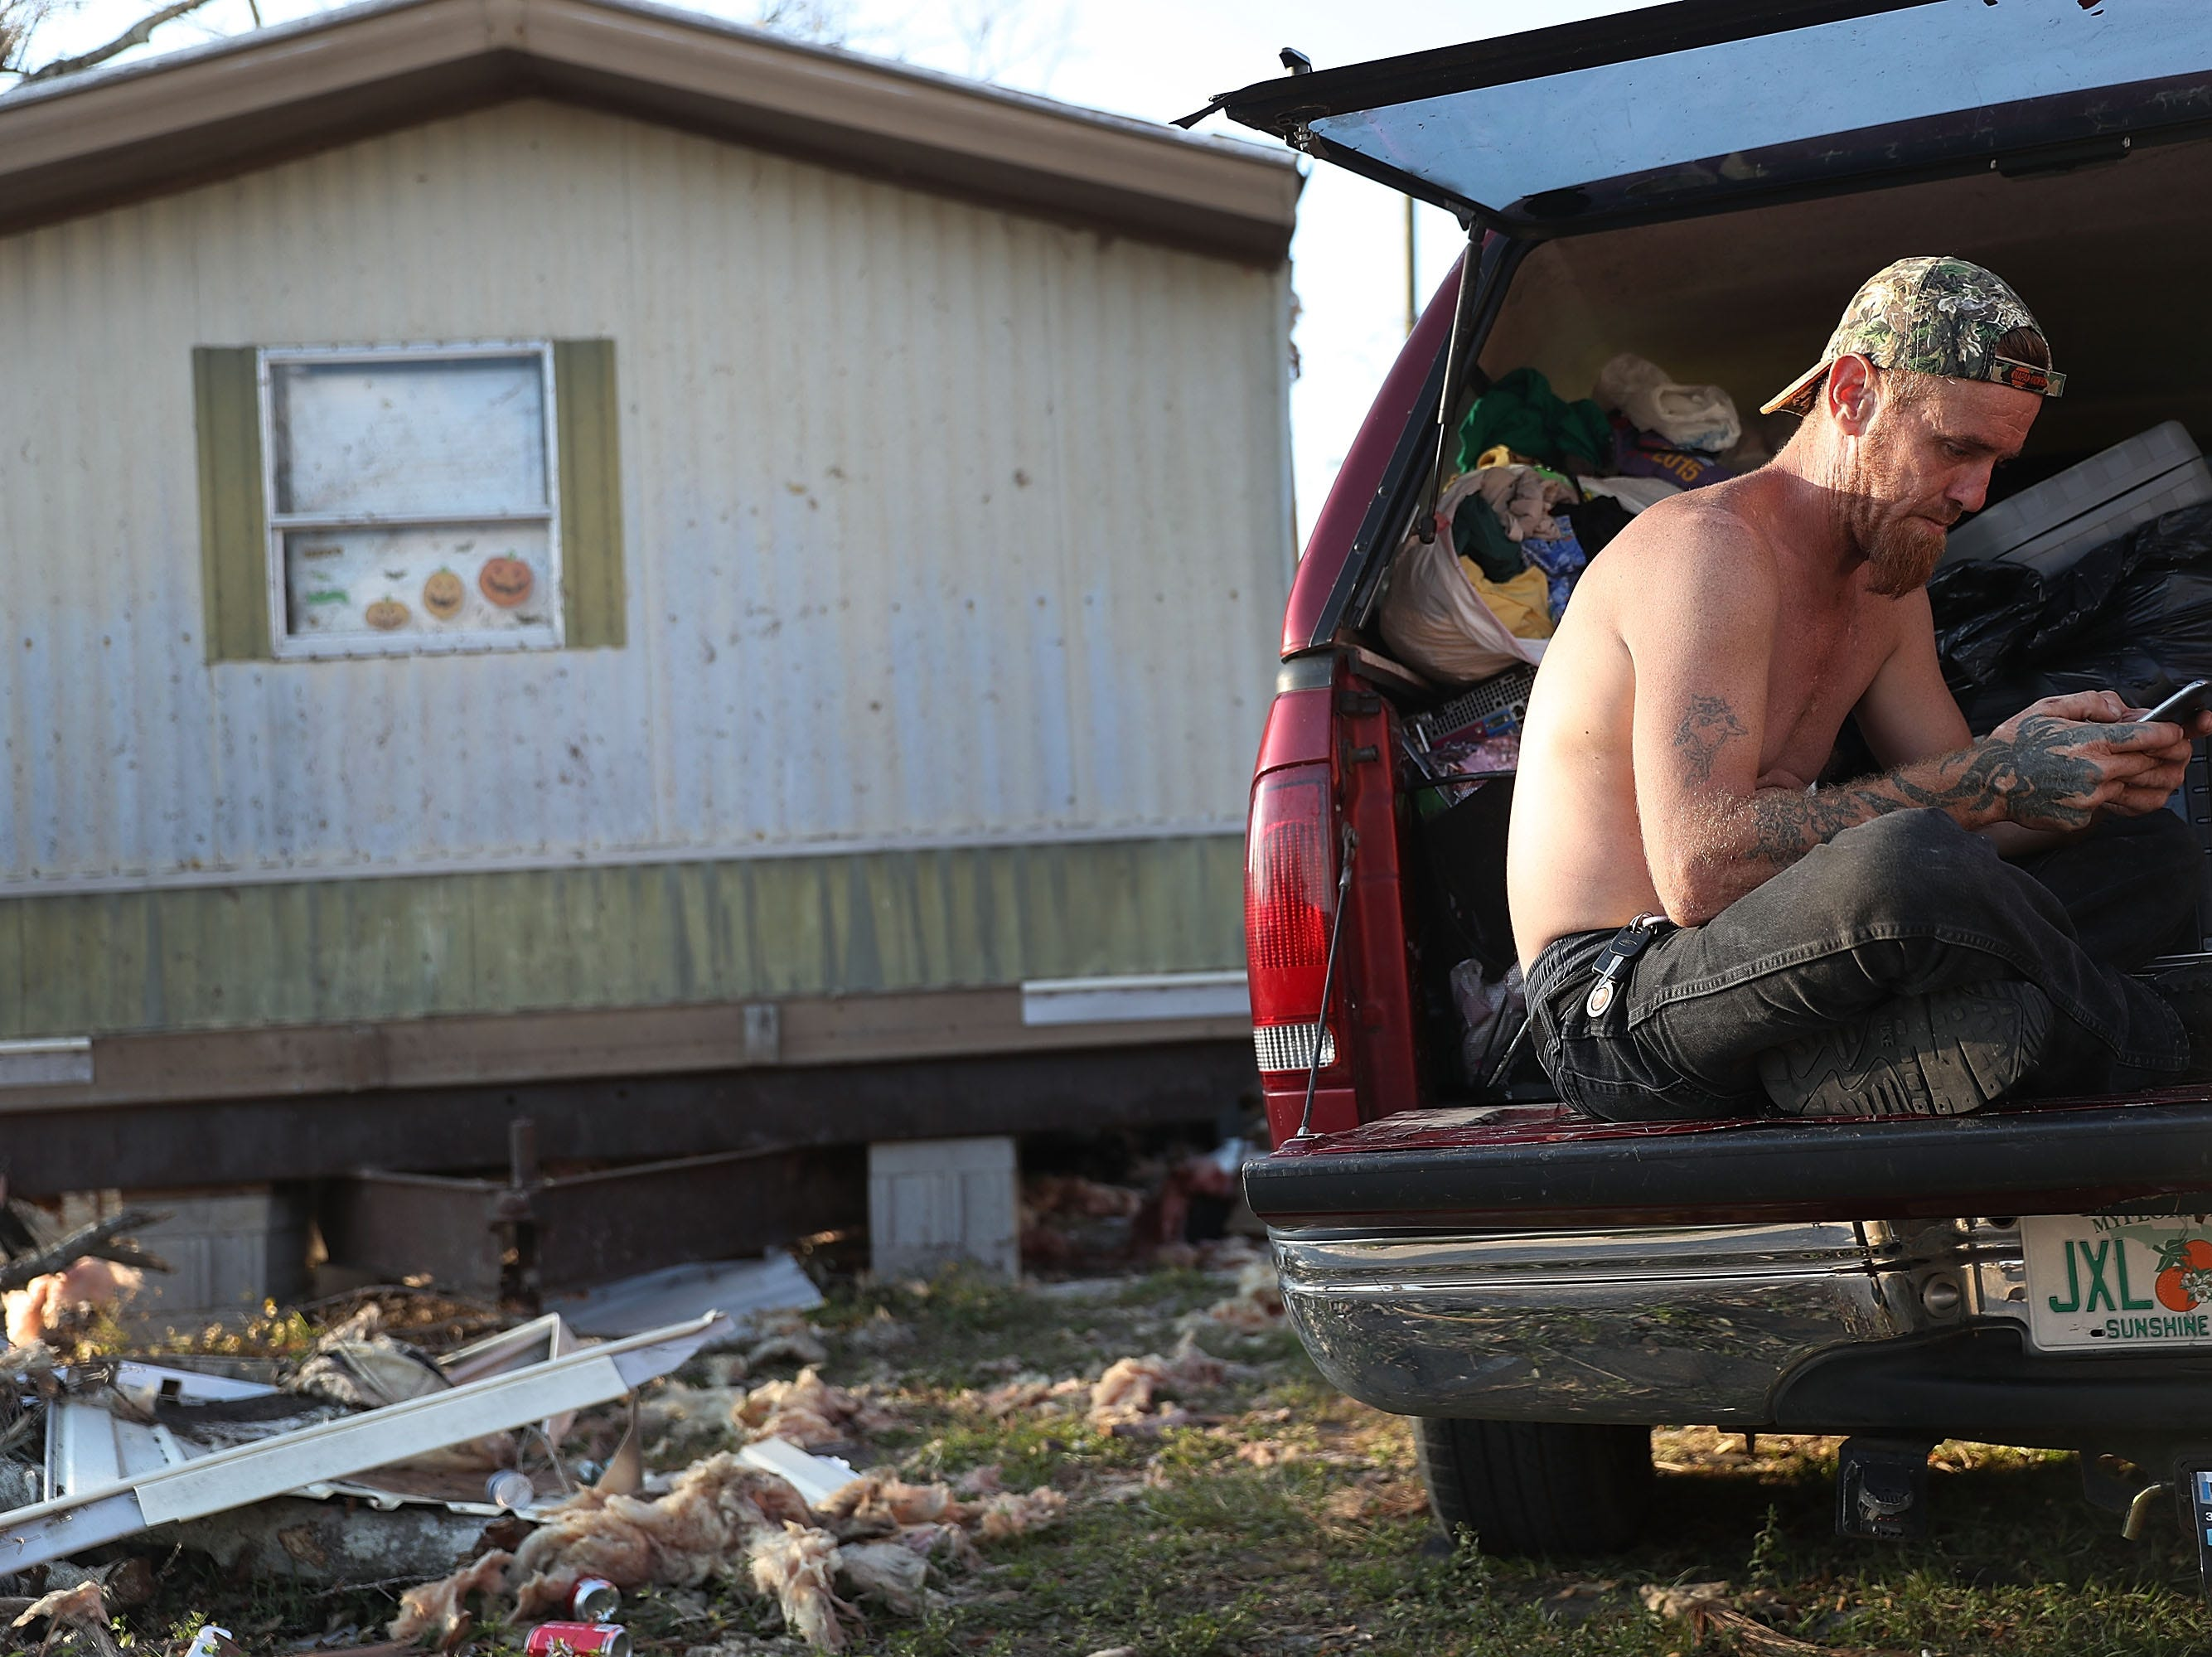 Nelson Cooper sits outside what is left of his home that was destroyed by Hurricane Michael as it passed through the area on Oct. 14, 2018 in Panama City, Fla. The hurricane hit the Florida Panhandle as a category 4 storm causing massive damage and claimed the lives of more then a dozen people.